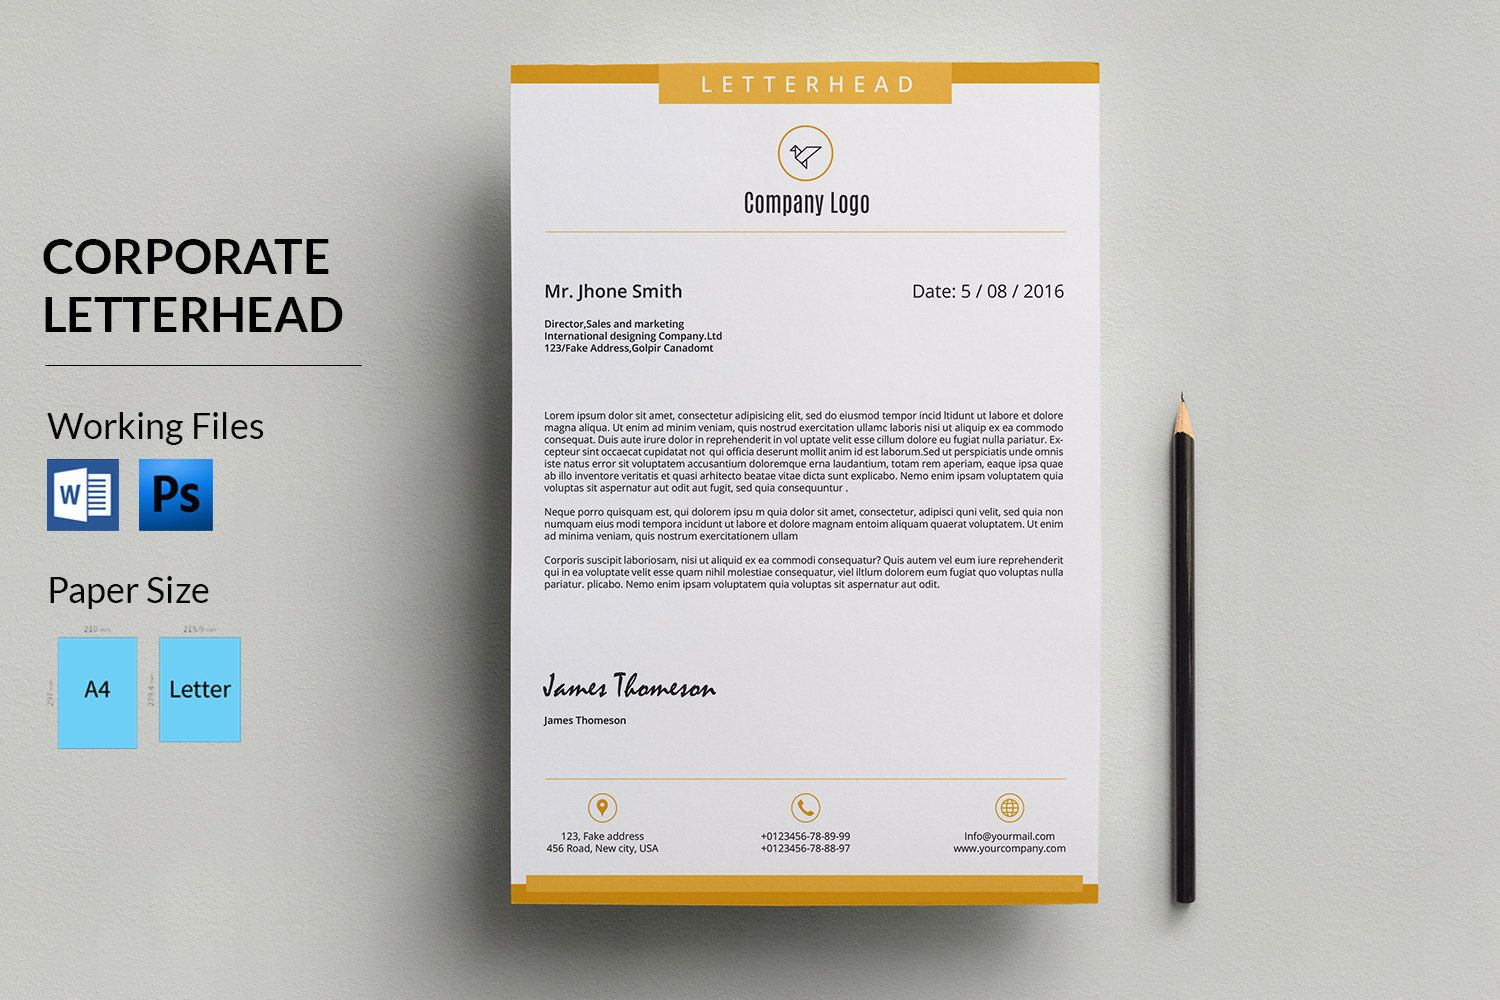 Corporate letterhead template business letterhead company corporate letterhead template business letterhead company letterhead printable photoshop ms word template instant download v02 spiritdancerdesigns Gallery